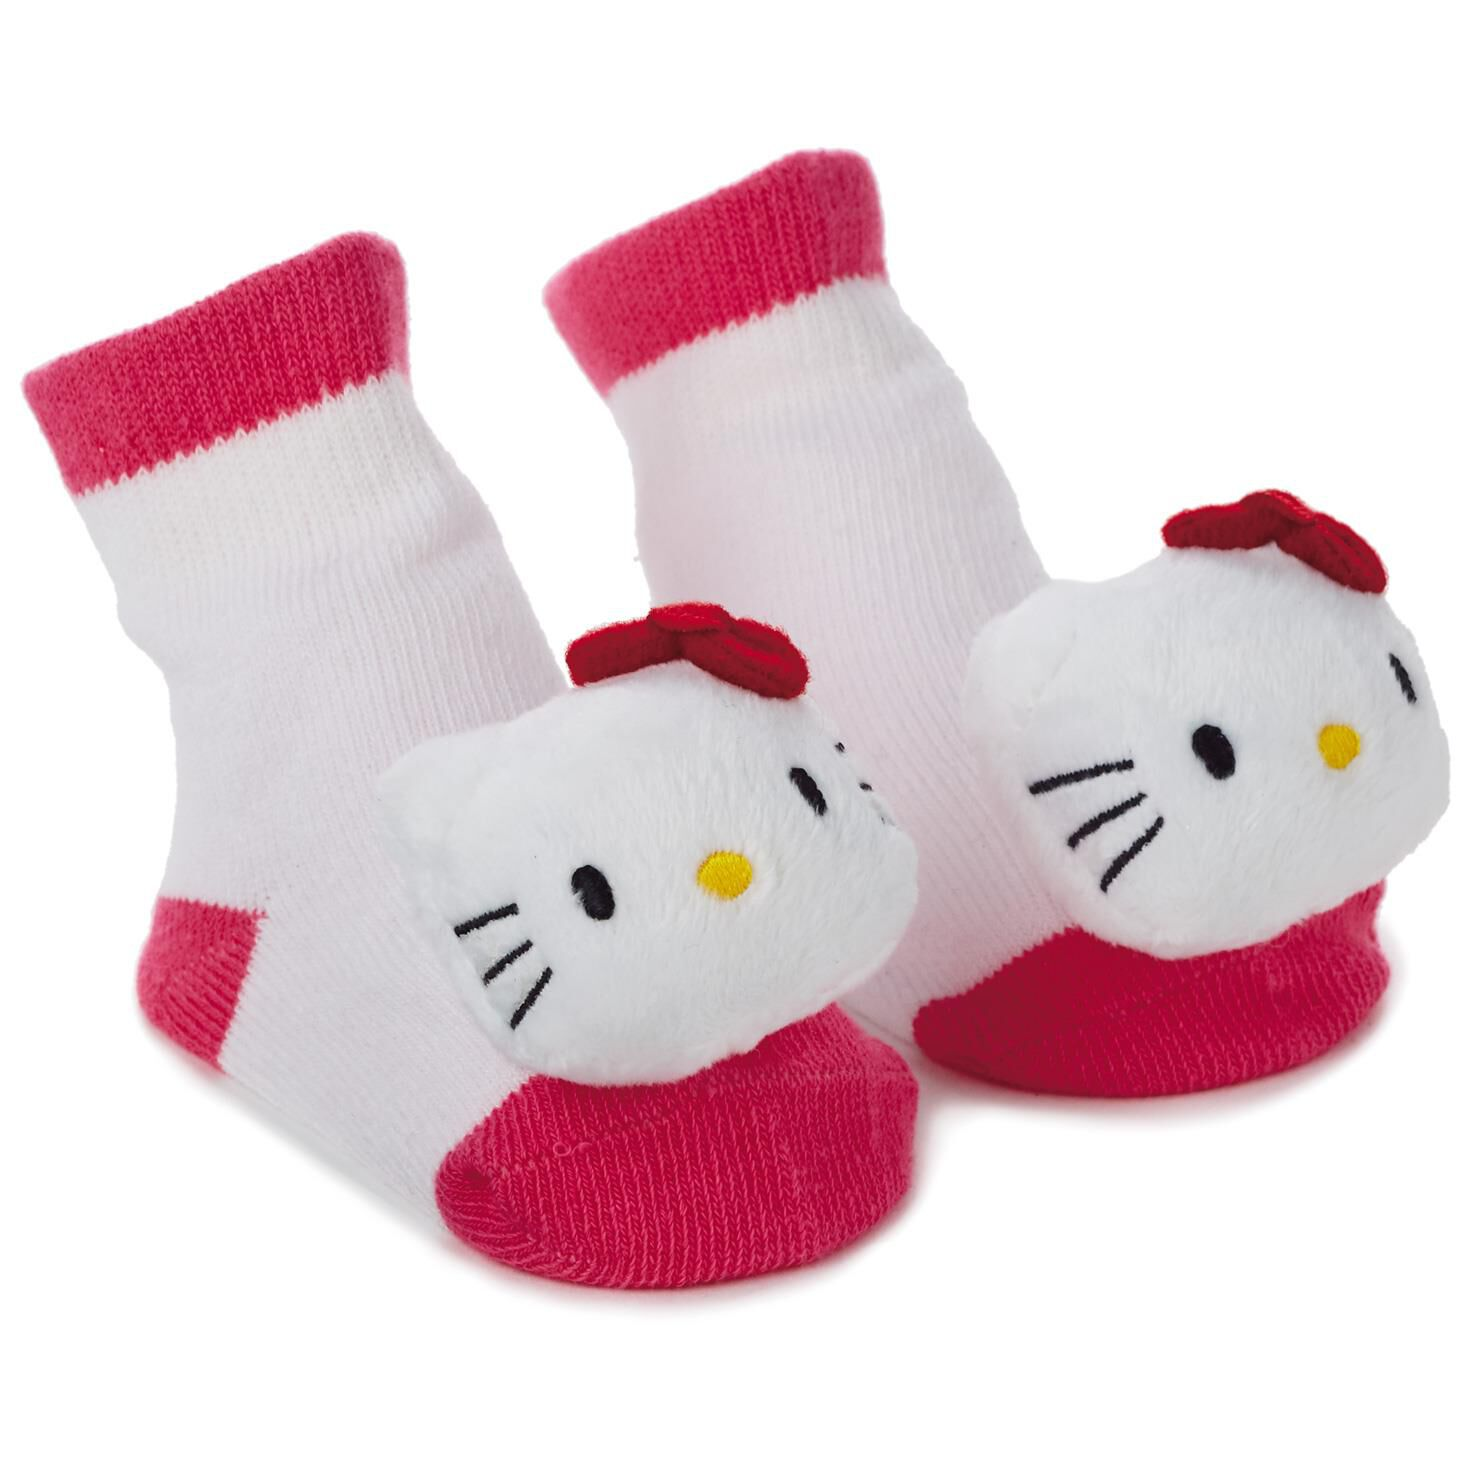 Hello Kitty Itty Bittys Baby Rattle Socks Baby Clothes Hallmark